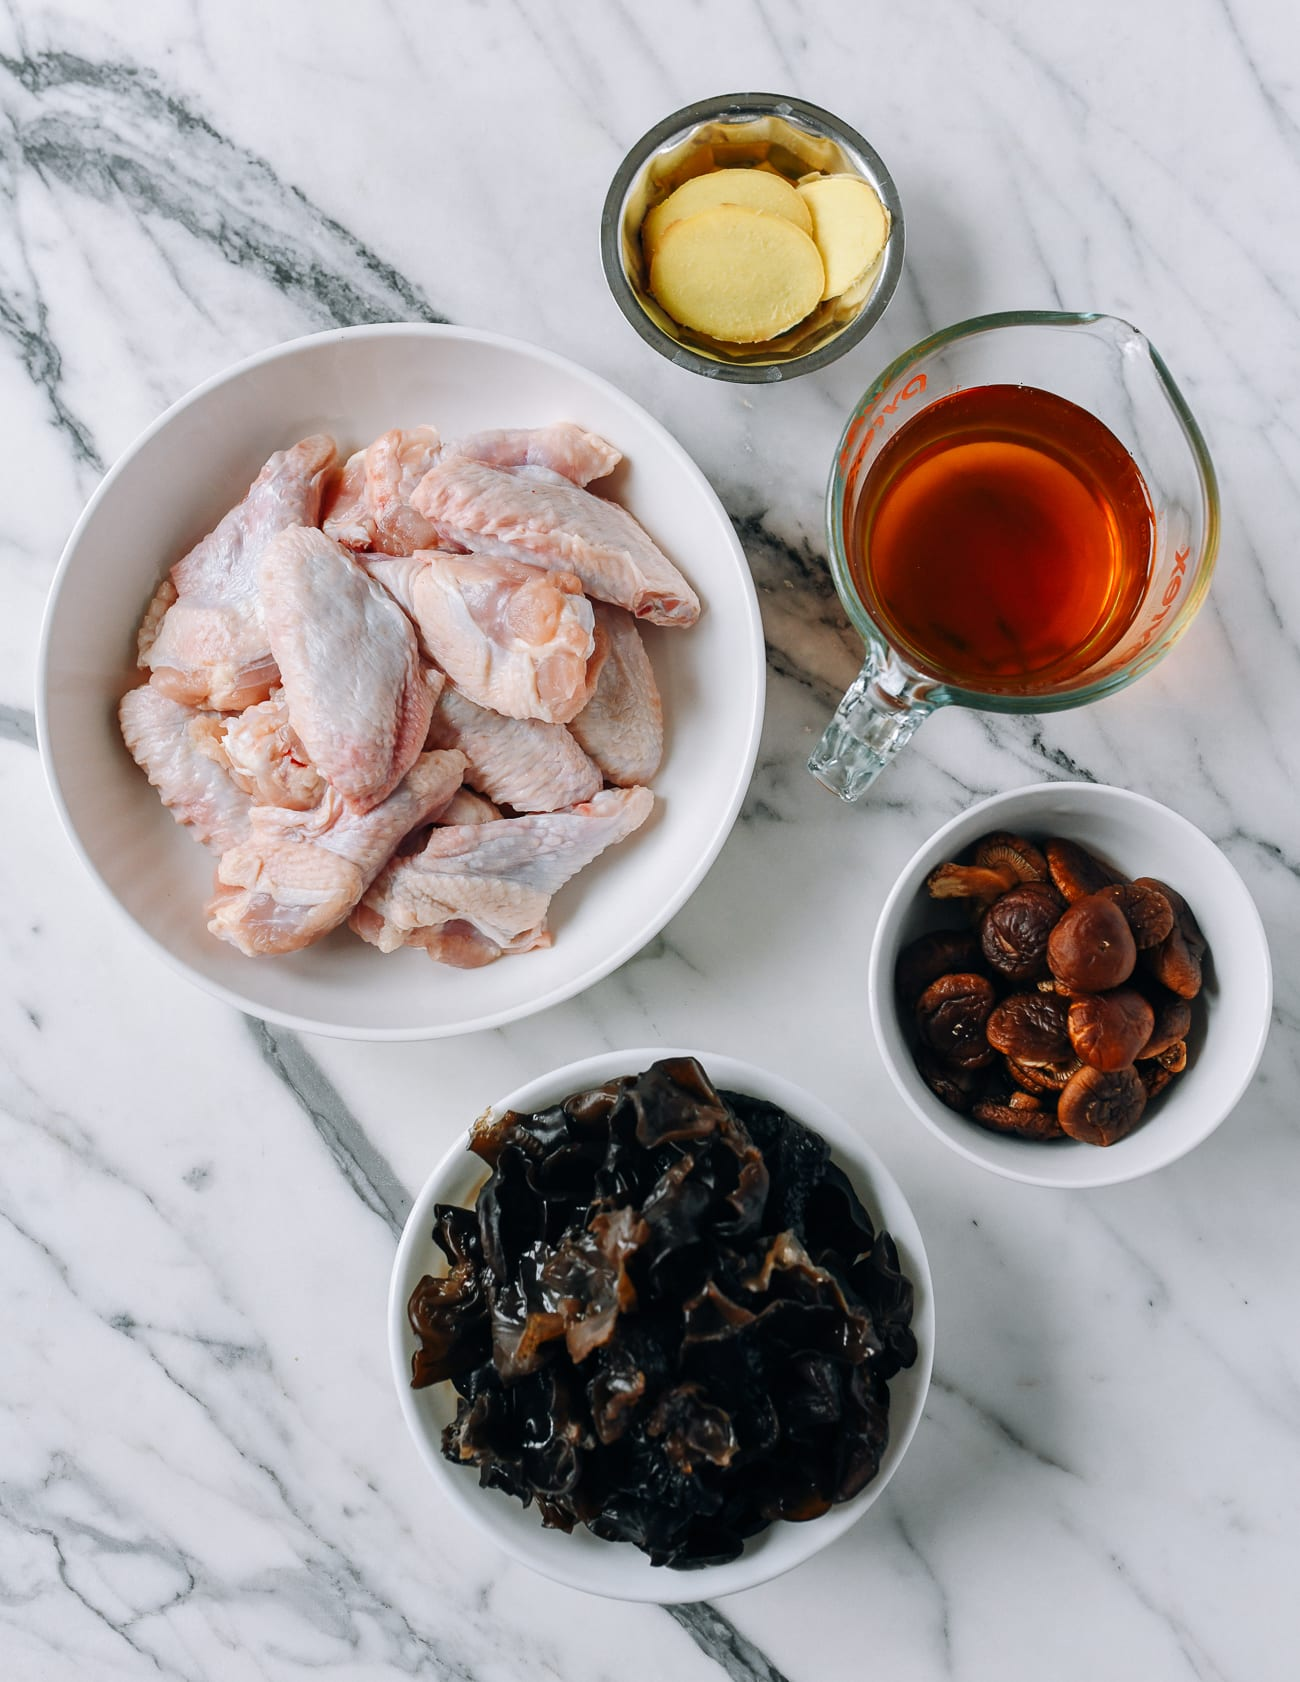 Ingredients for Chinese braised chicken and mushrooms